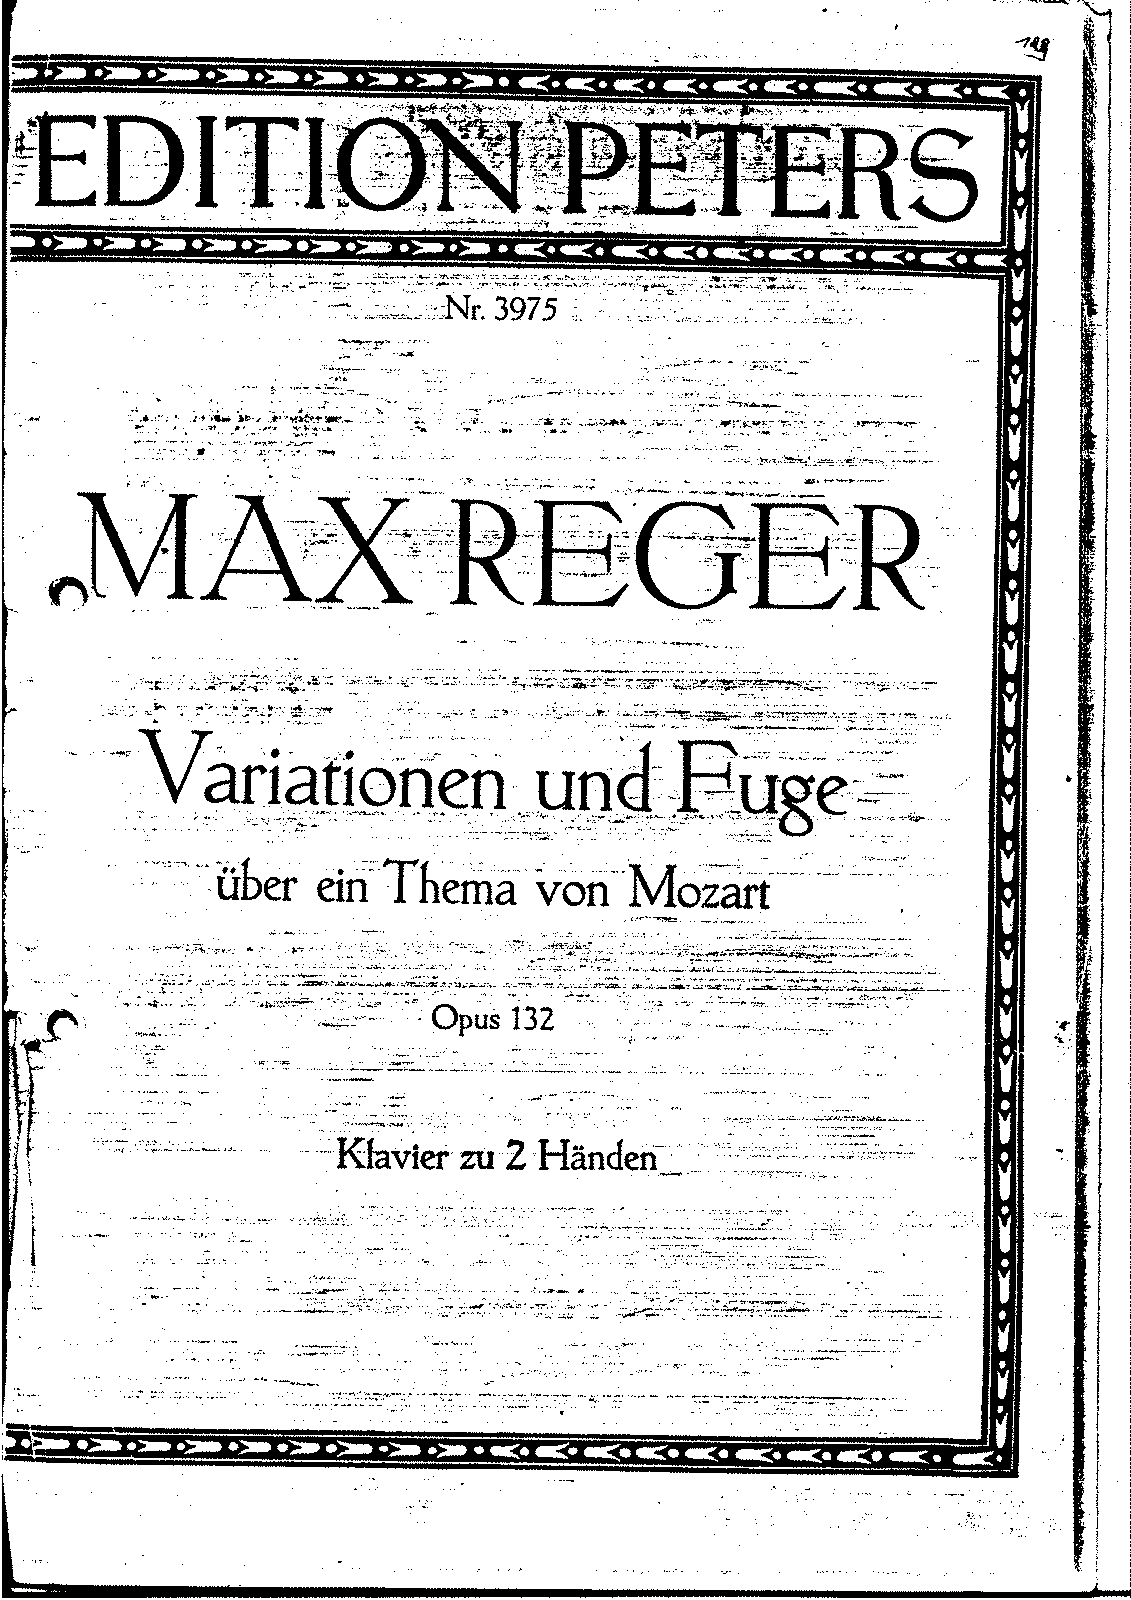 Reger-op132-Variations-Fugue-theme-by-Mozart-pno-trancr.pdf